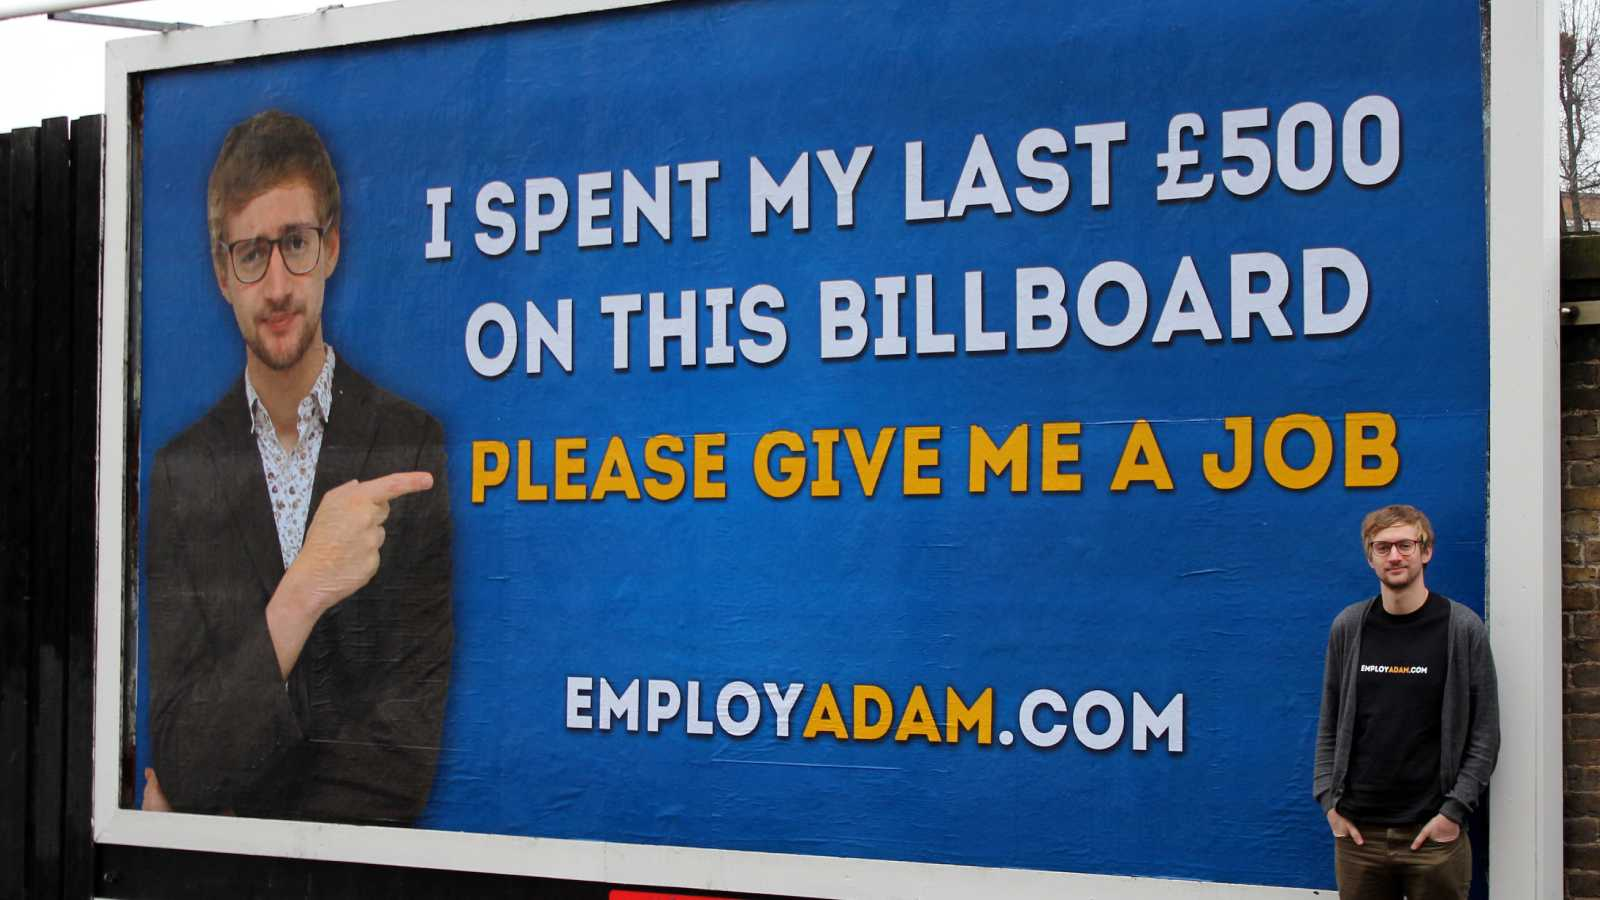 The graduate who spent his last £500 on a billboard begging for a job